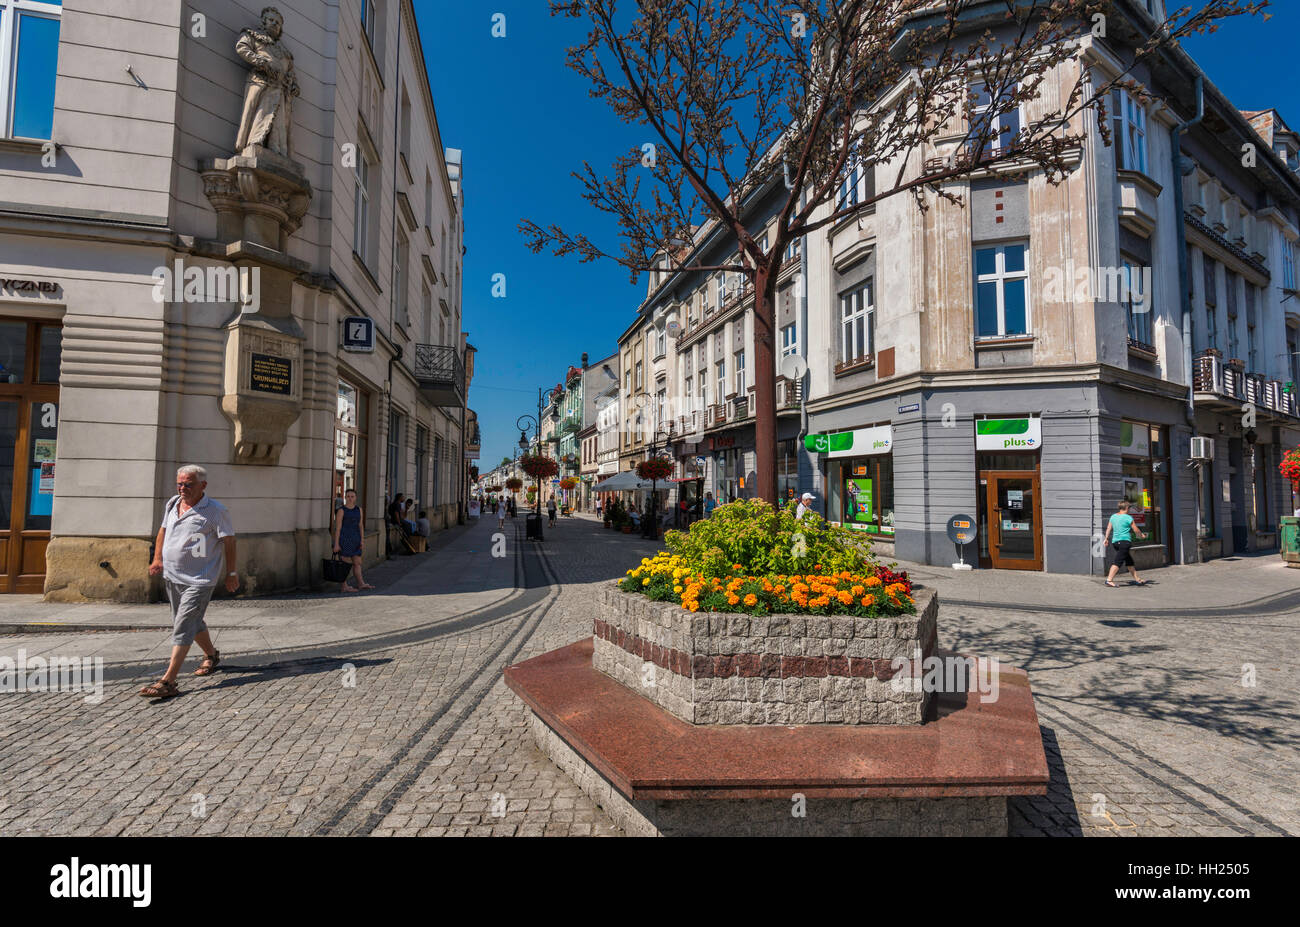 Ulica Jagiellonska pedestrian area on hot summer day in Nowy Sacz, Malopolska, Poland - Stock Image